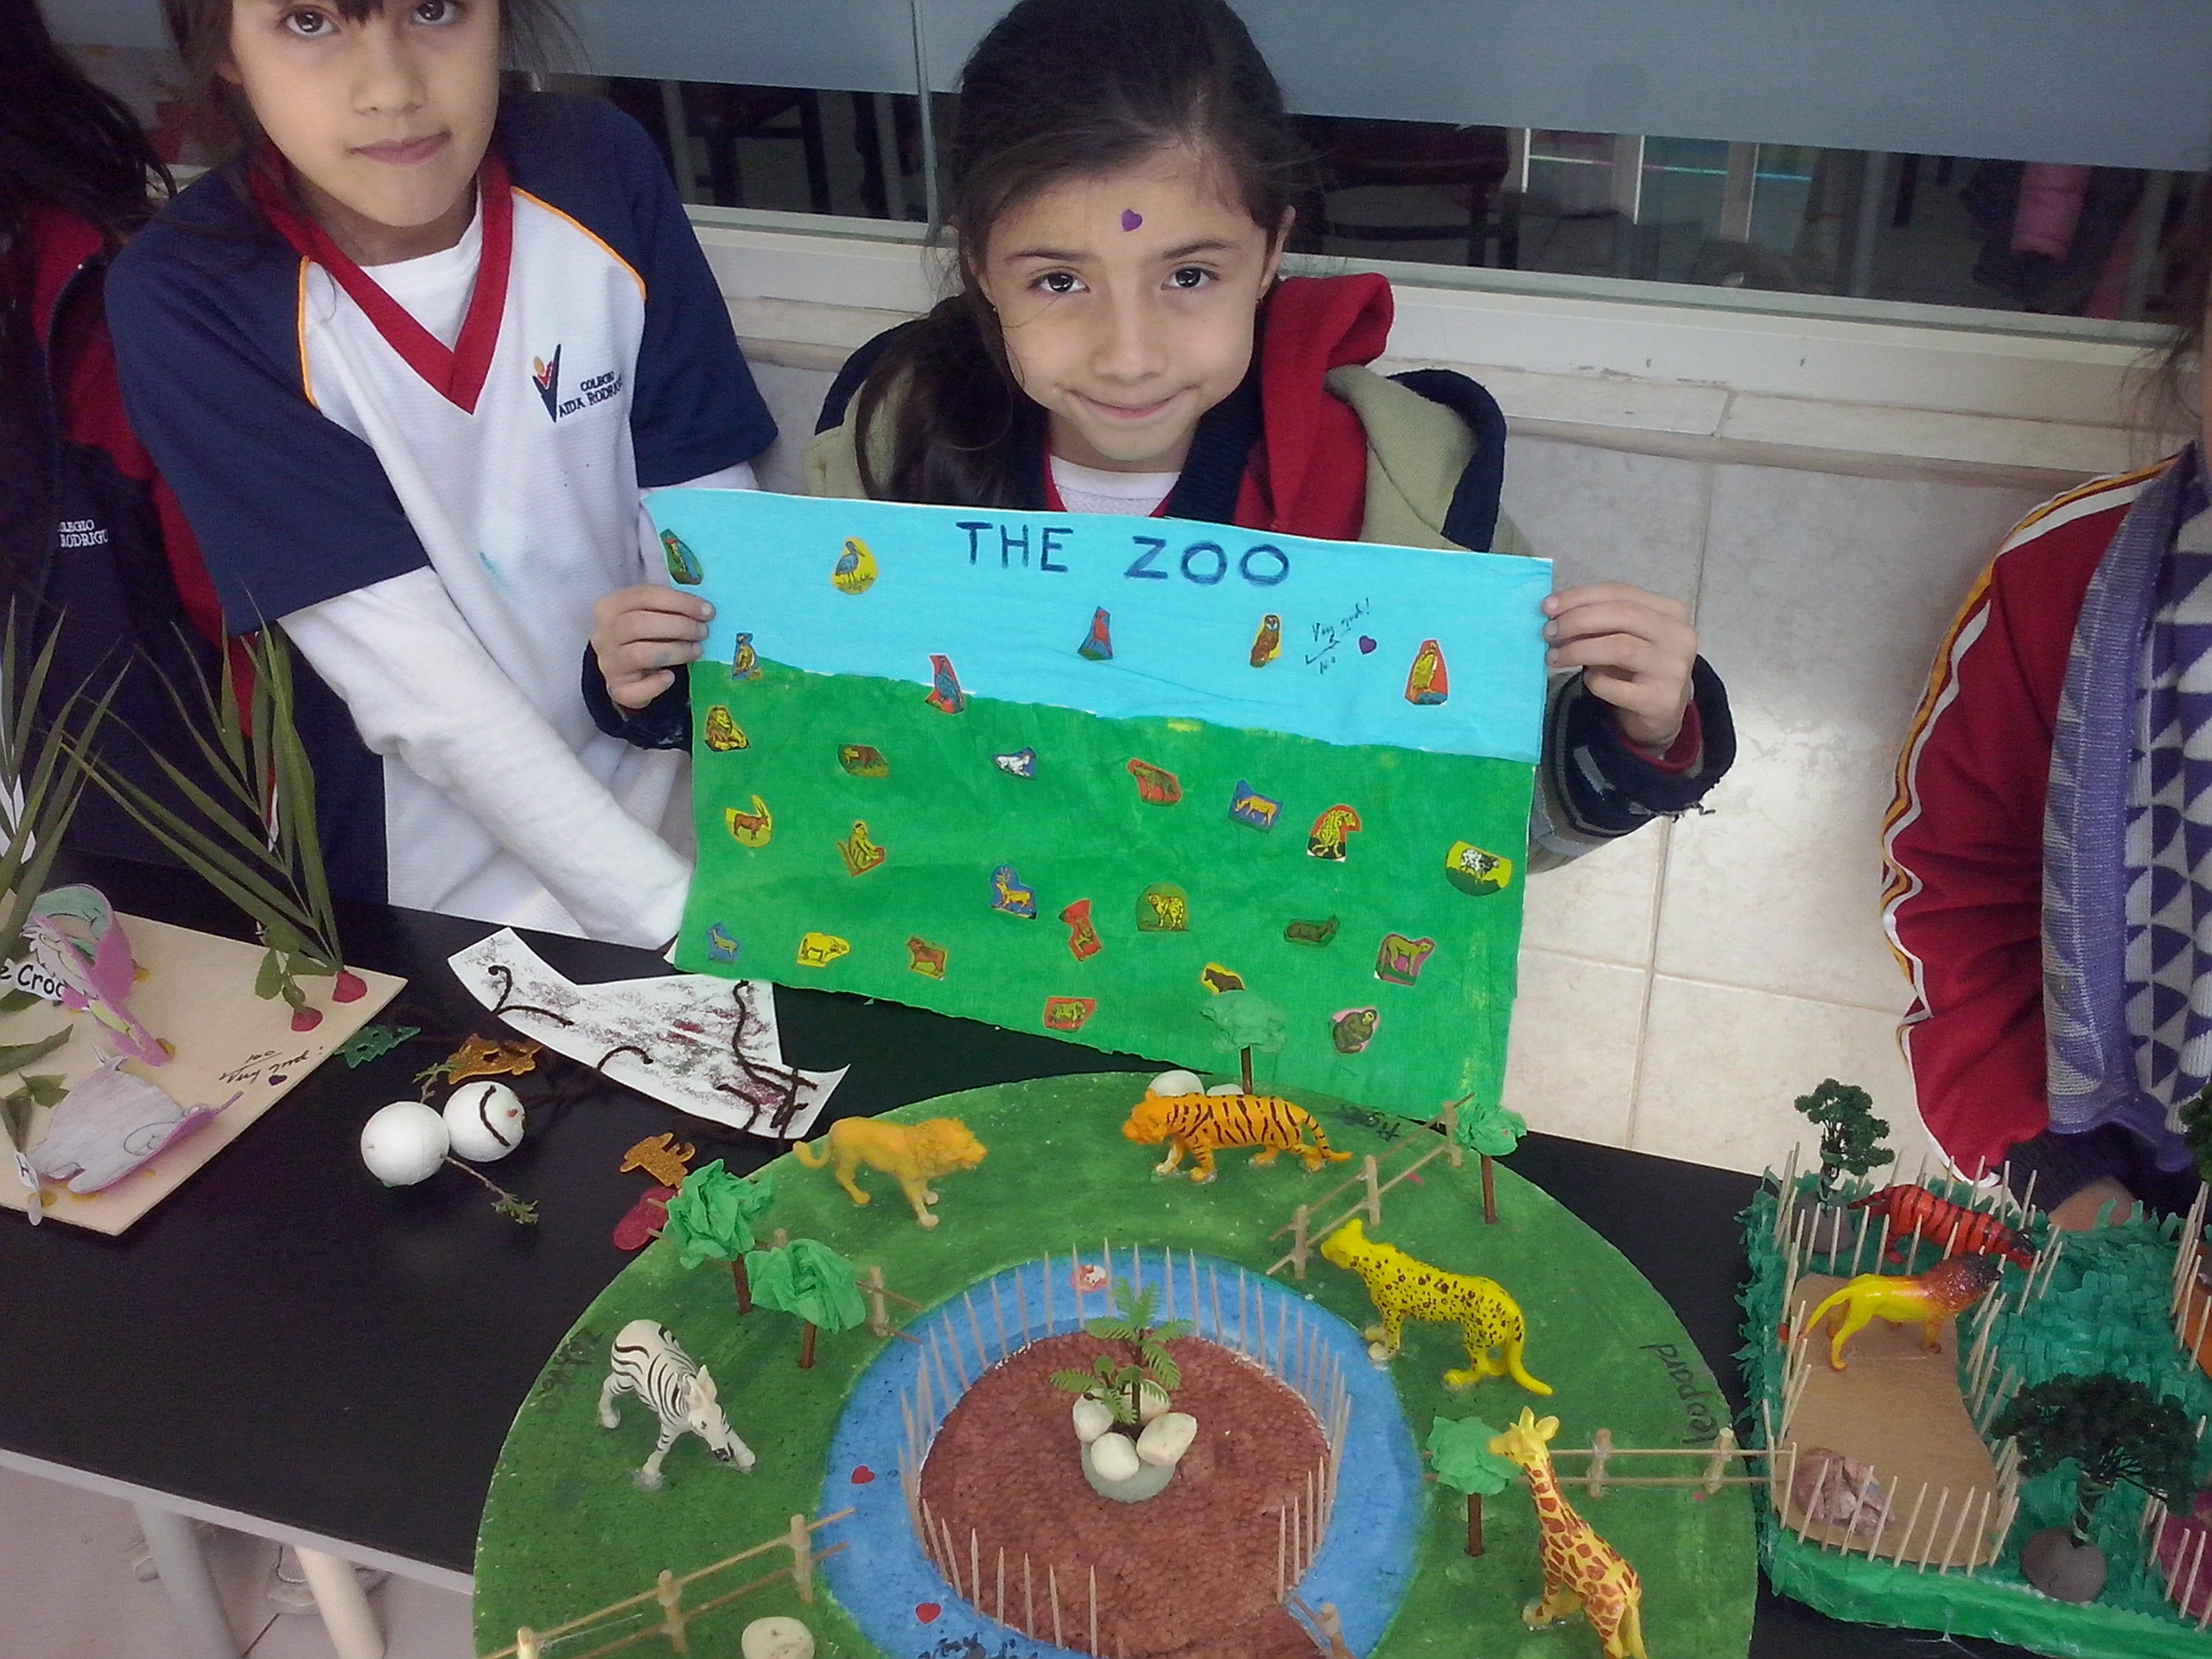 2ND GRADE PROJECT WILD ANIMALS 2014 -CAMPUS LA FE